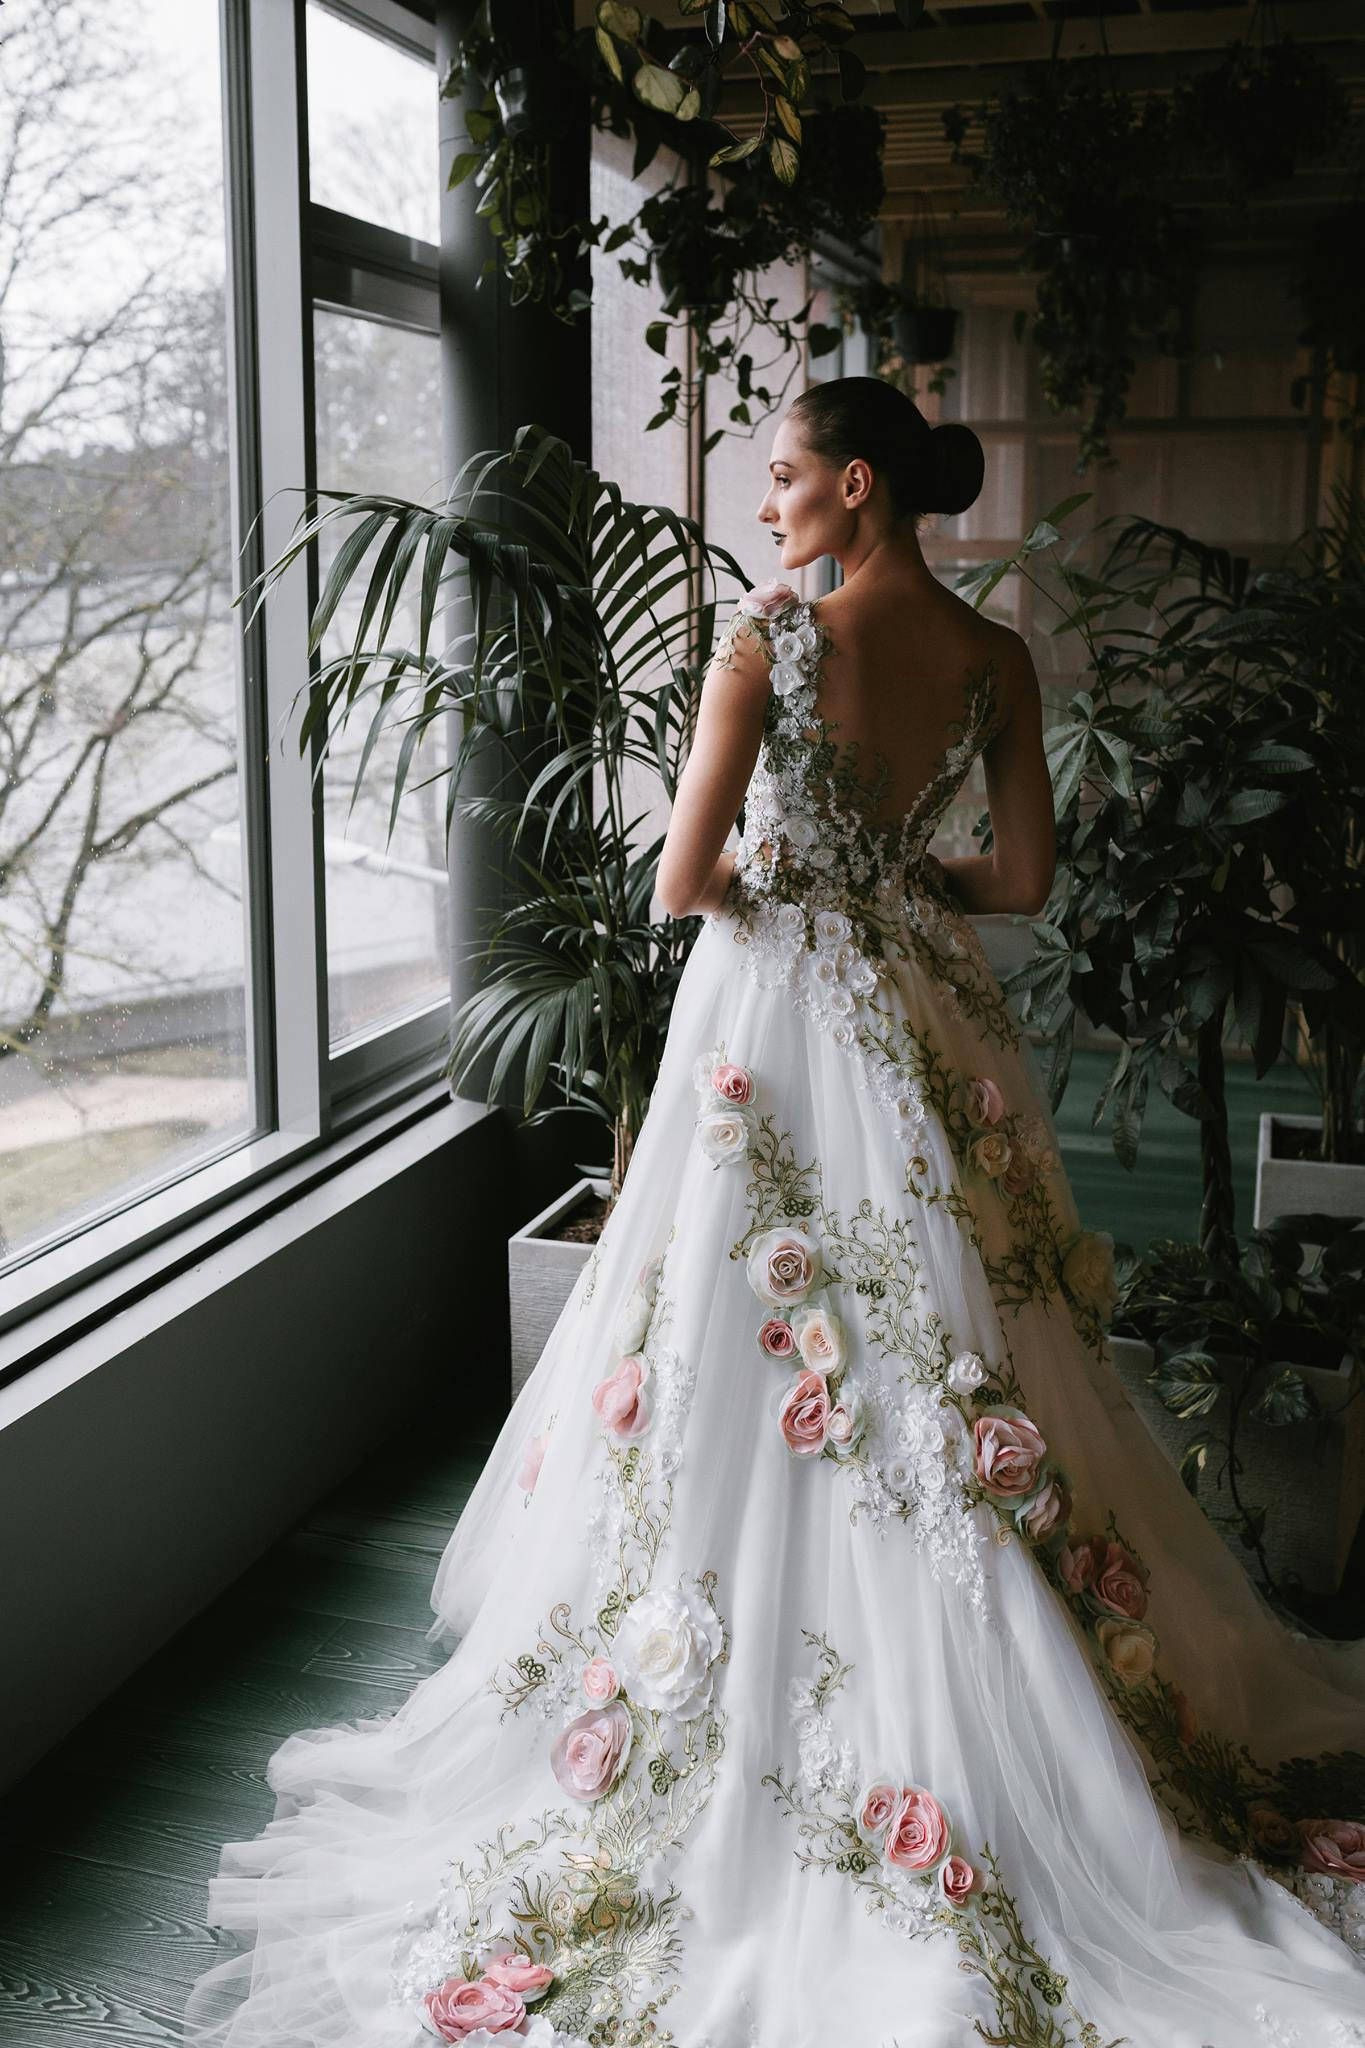 Wedding Dress From Inga Ezergale Design Collection 2019